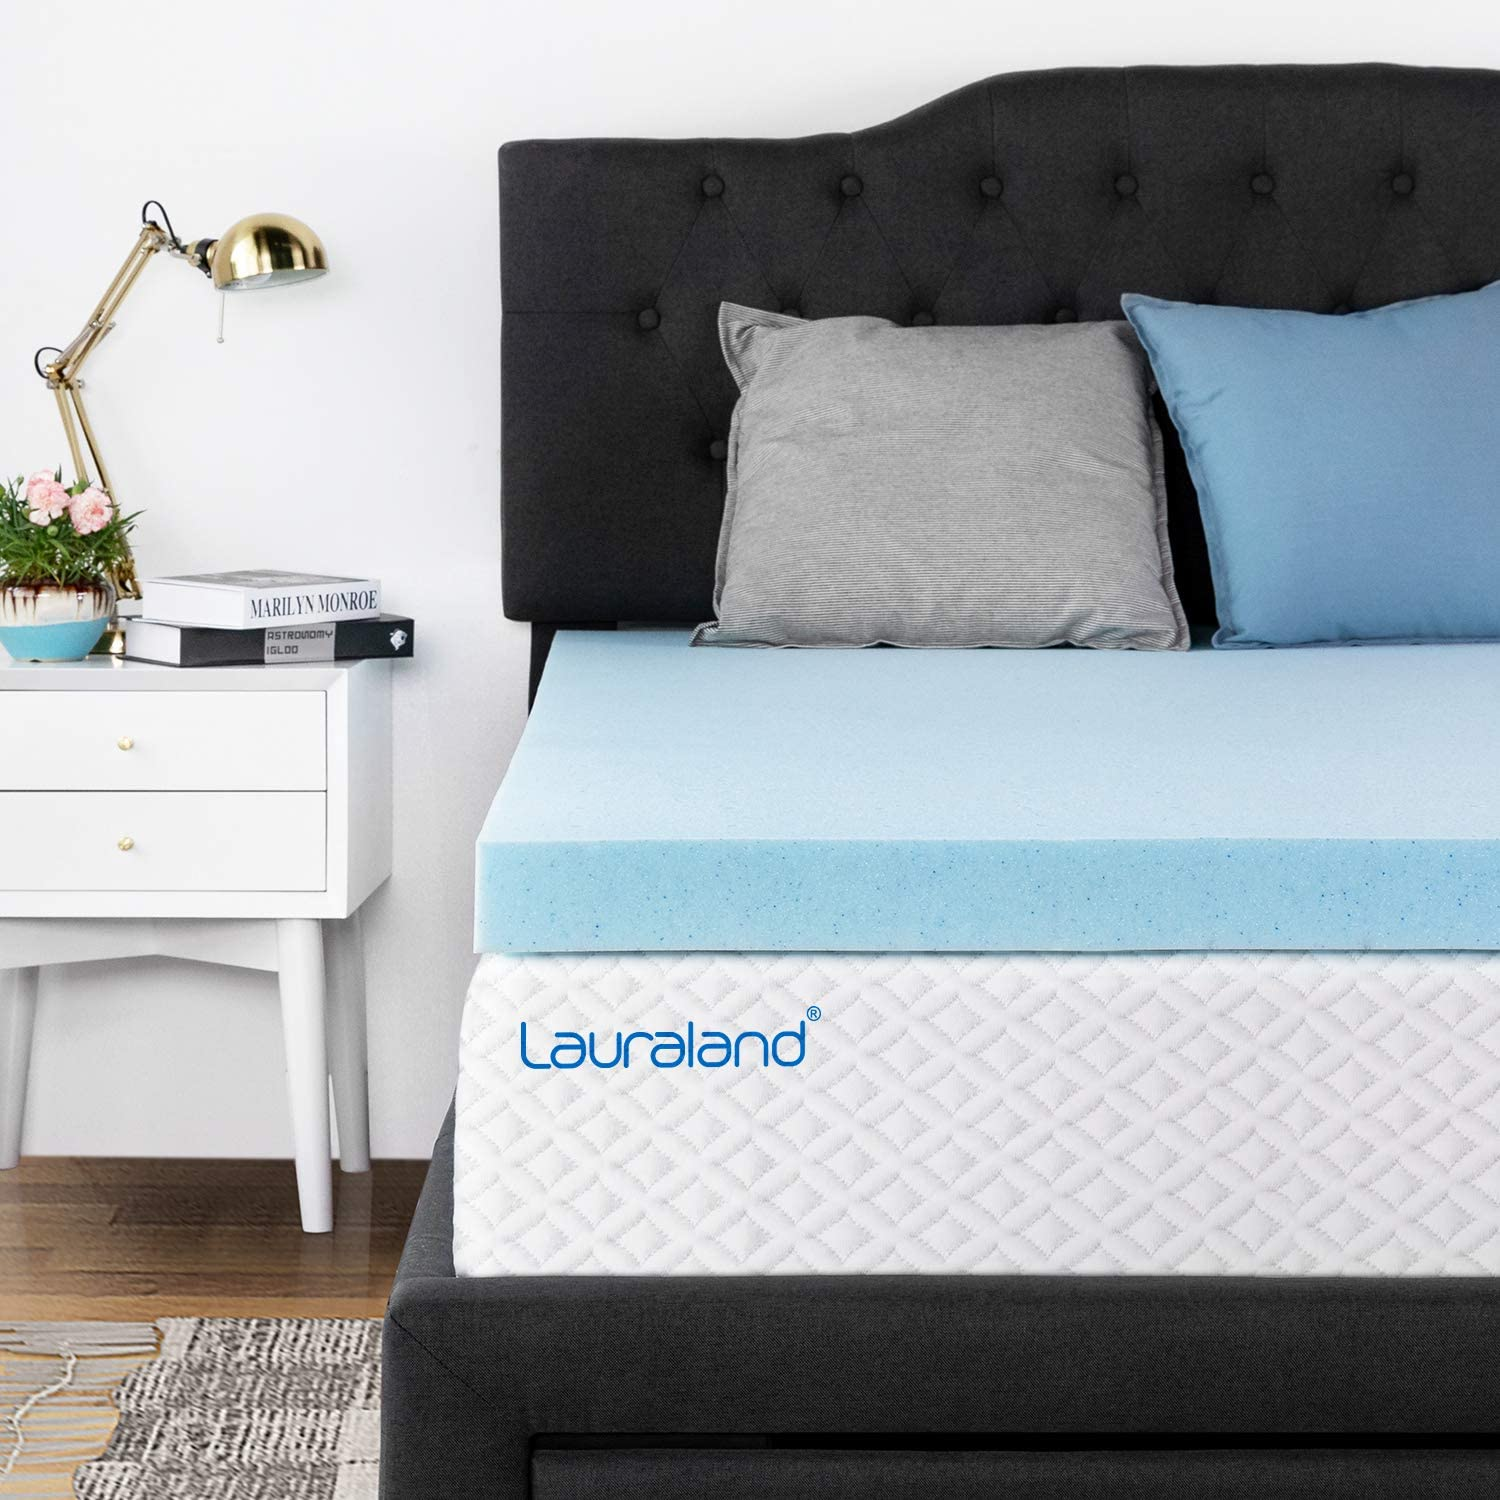 Lauraland Memory Foam Mattress Topper Twin, 3-Inch Active Cooling Design Bed Topper, CertiPUR-US 10-Year Warranty